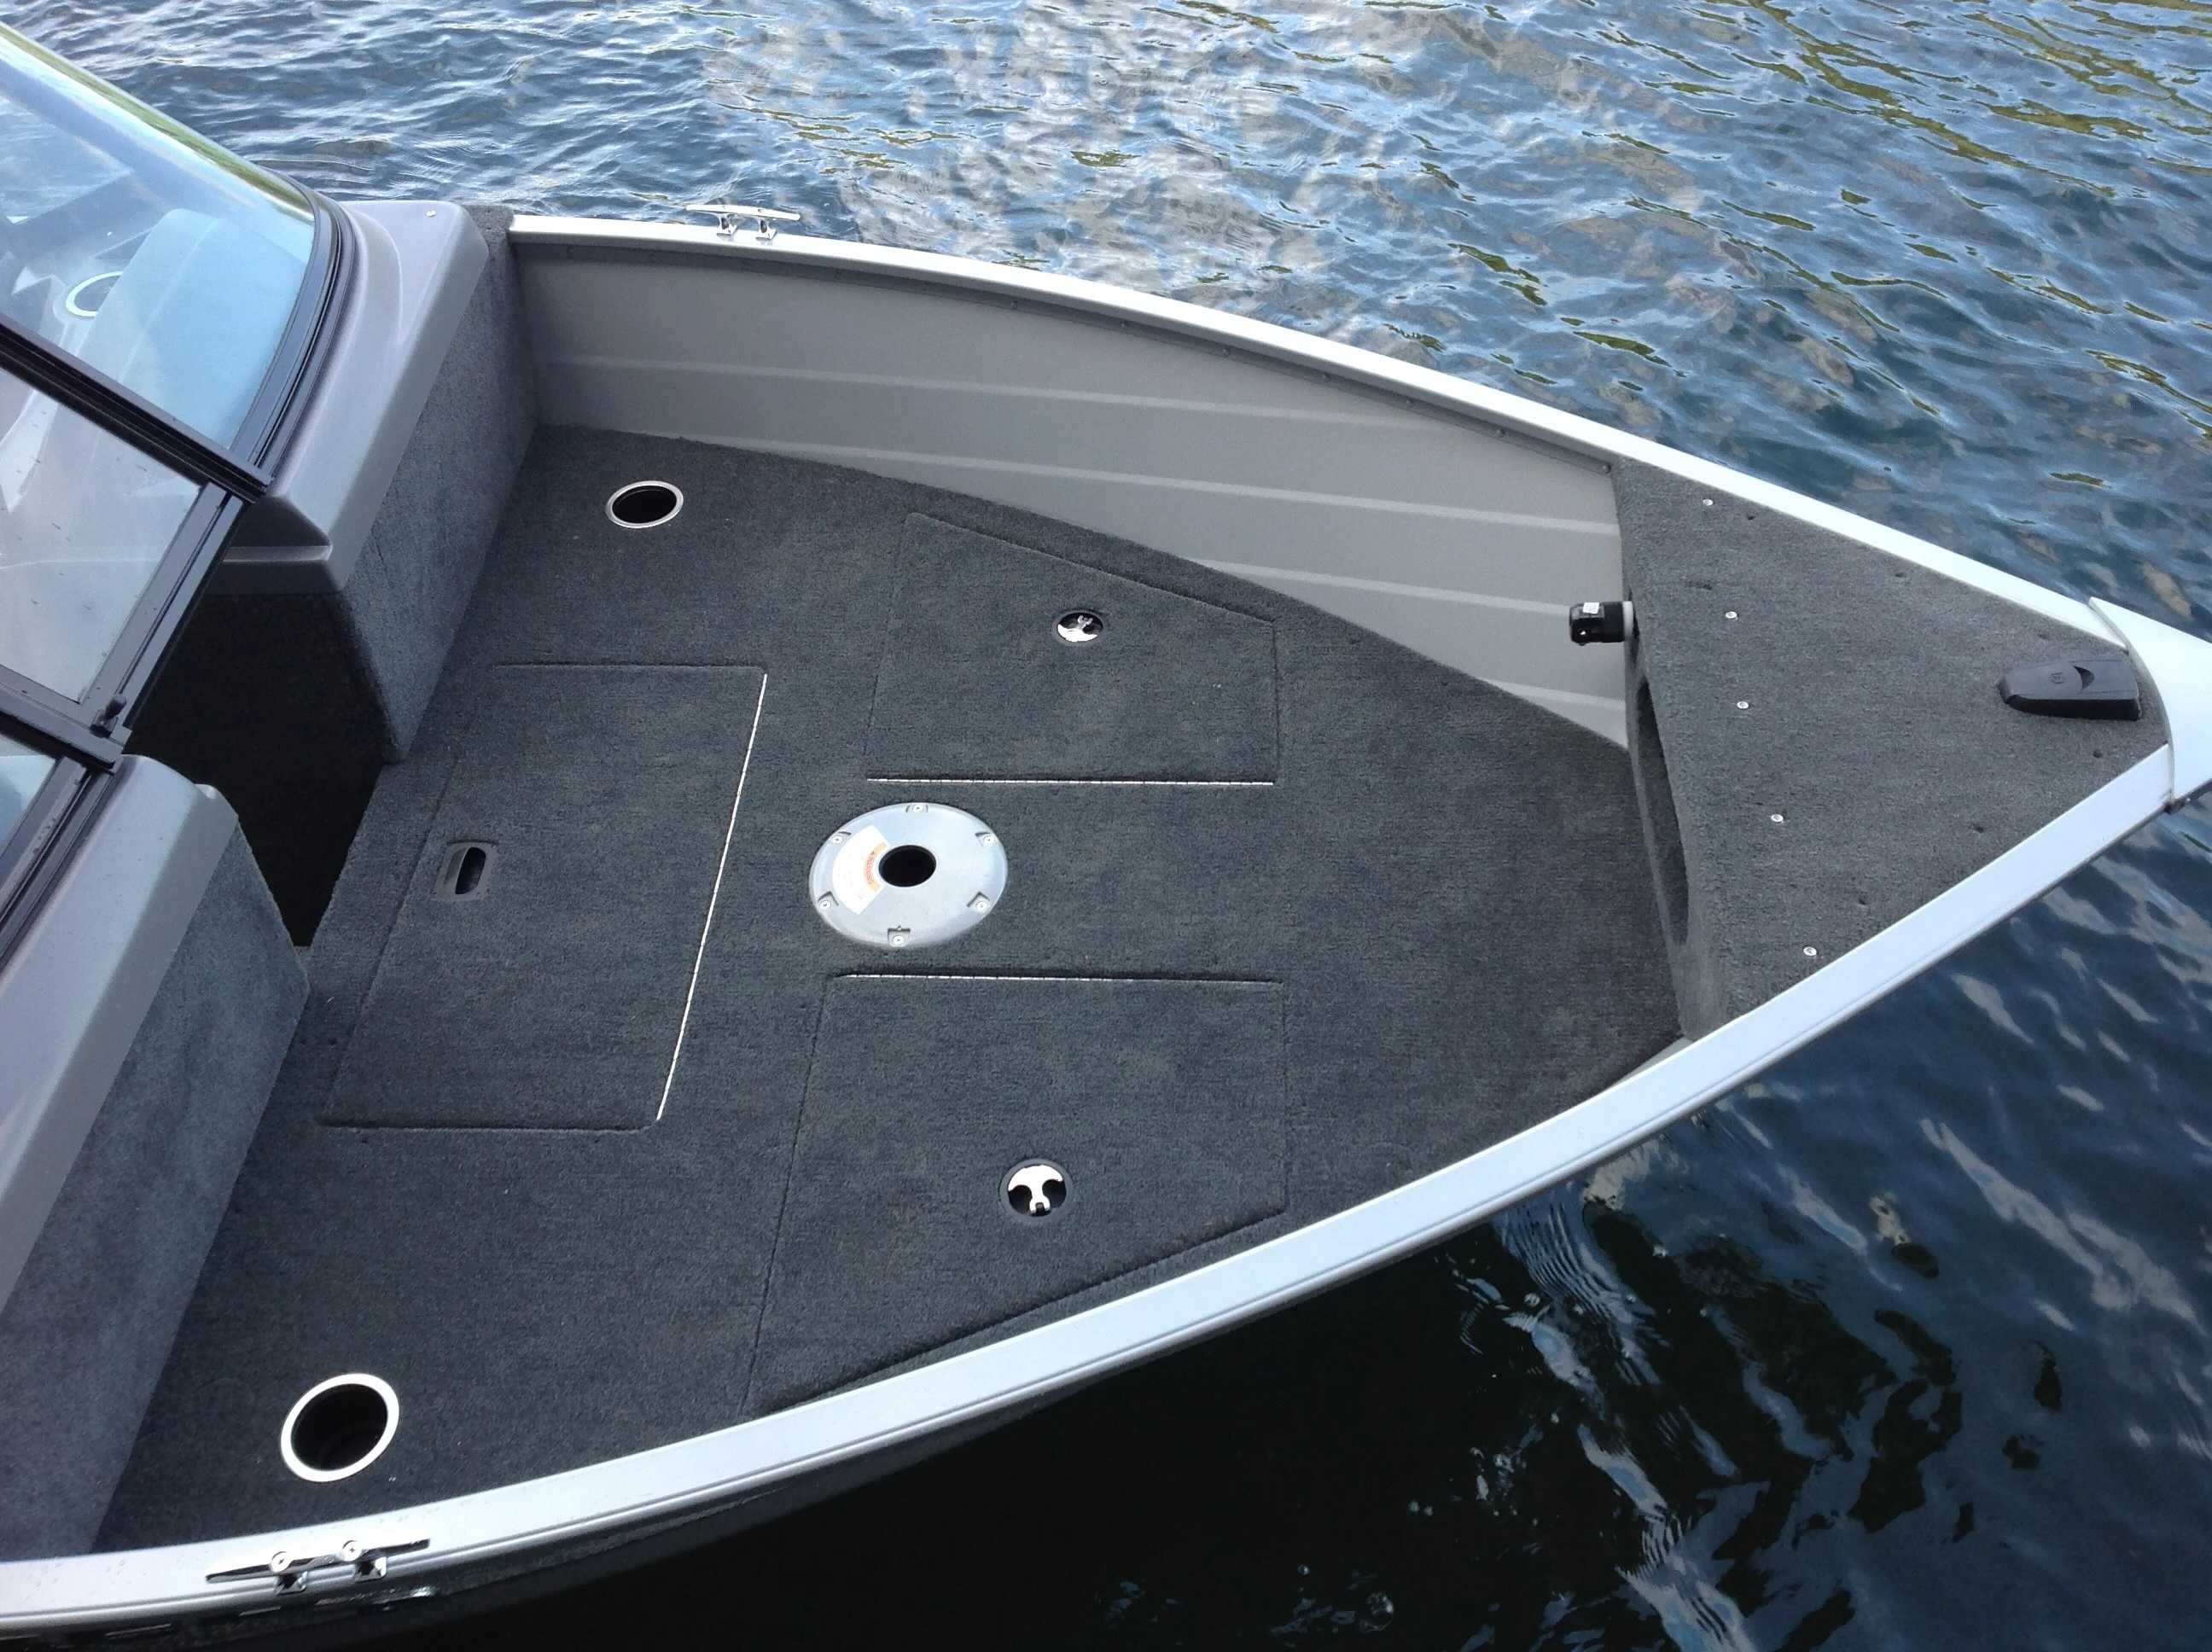 2021 Smoker Craft boat for sale, model of the boat is 162 Pro Angler & Image # 3 of 17